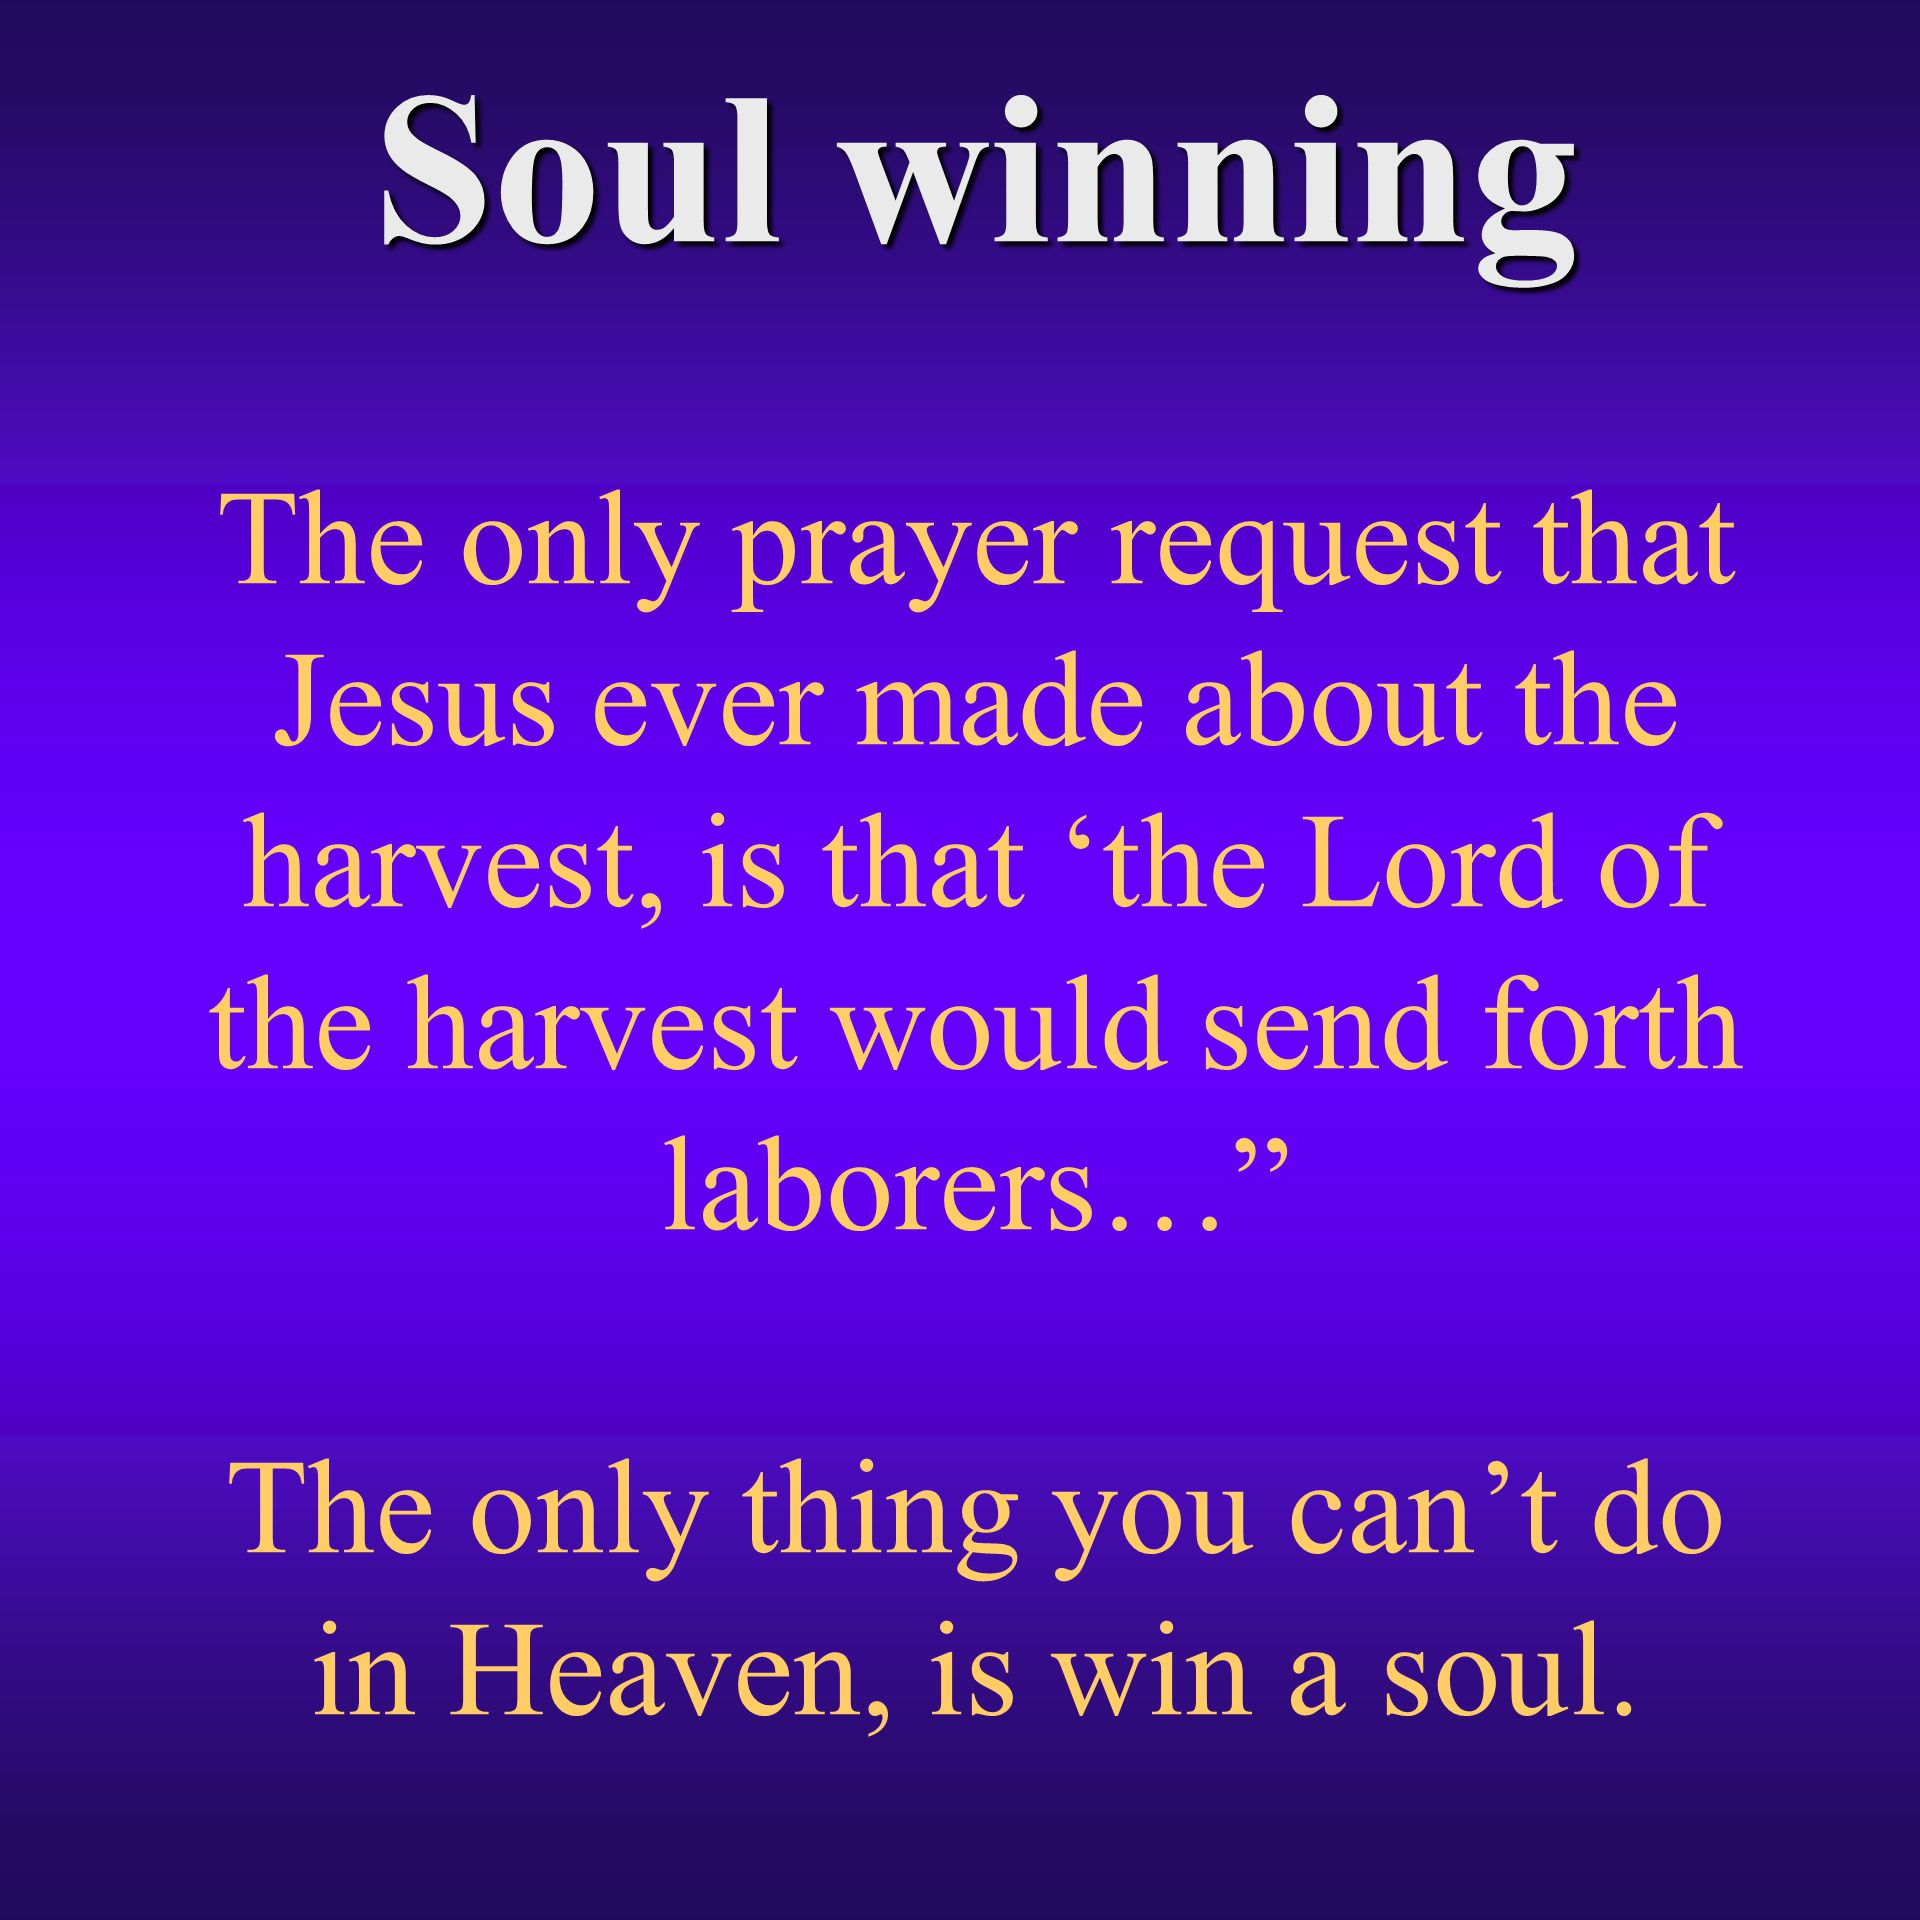 Soul winning Soul winning The only prayer request that Jesus ever made about the harvest, is that 'the Lord of the harvest would send forth laborers… The only thing you can't do in Heaven, is win a soul.